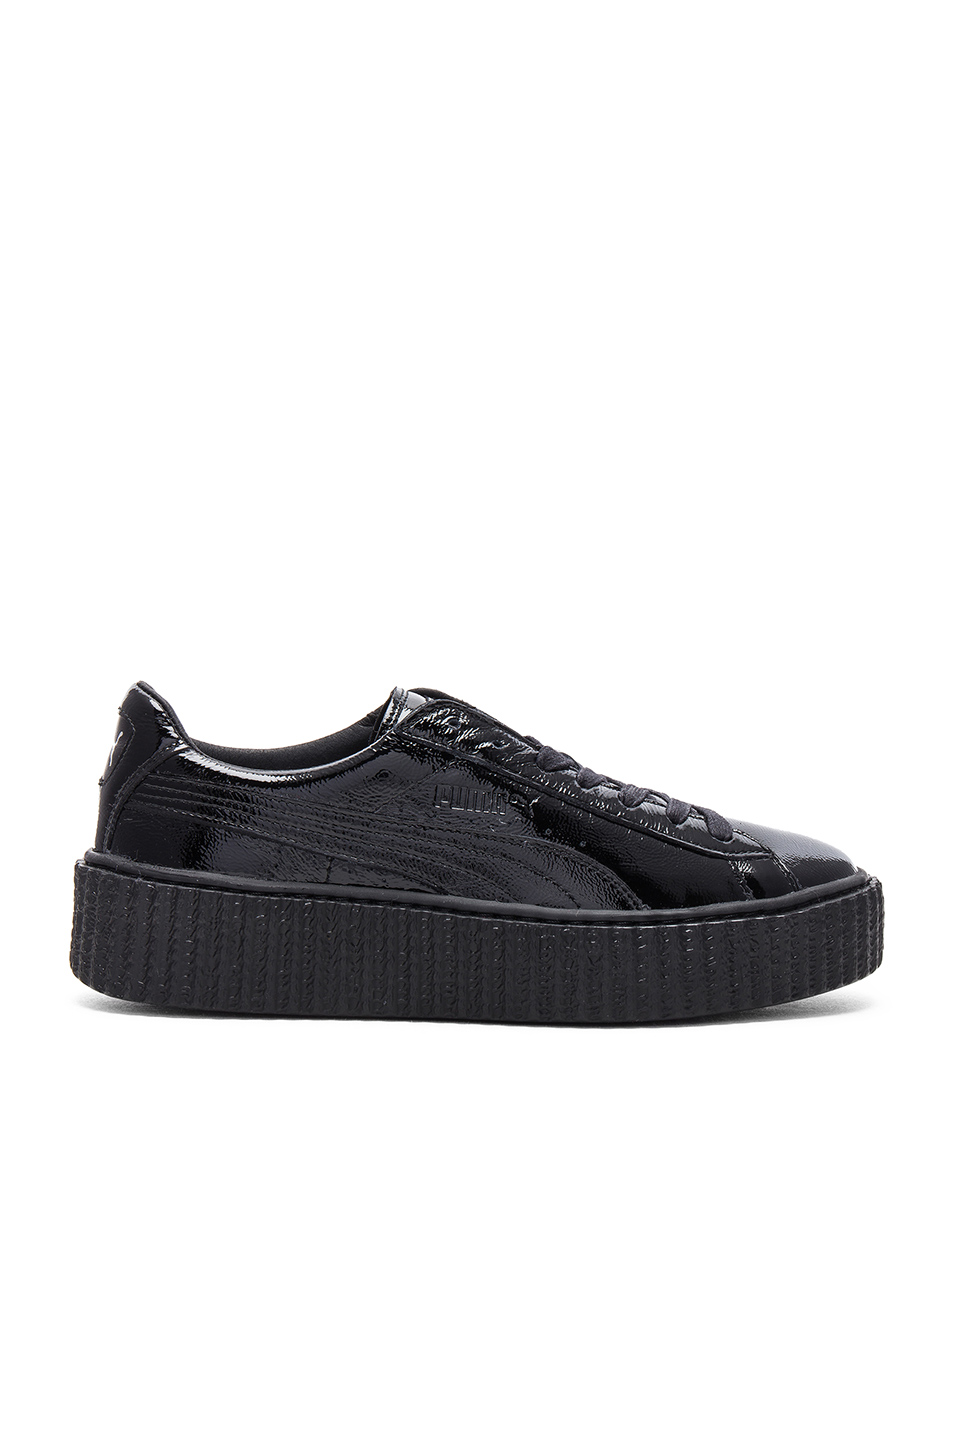 Fenty by Puma Patent Leather Creeper Sneakers in Black